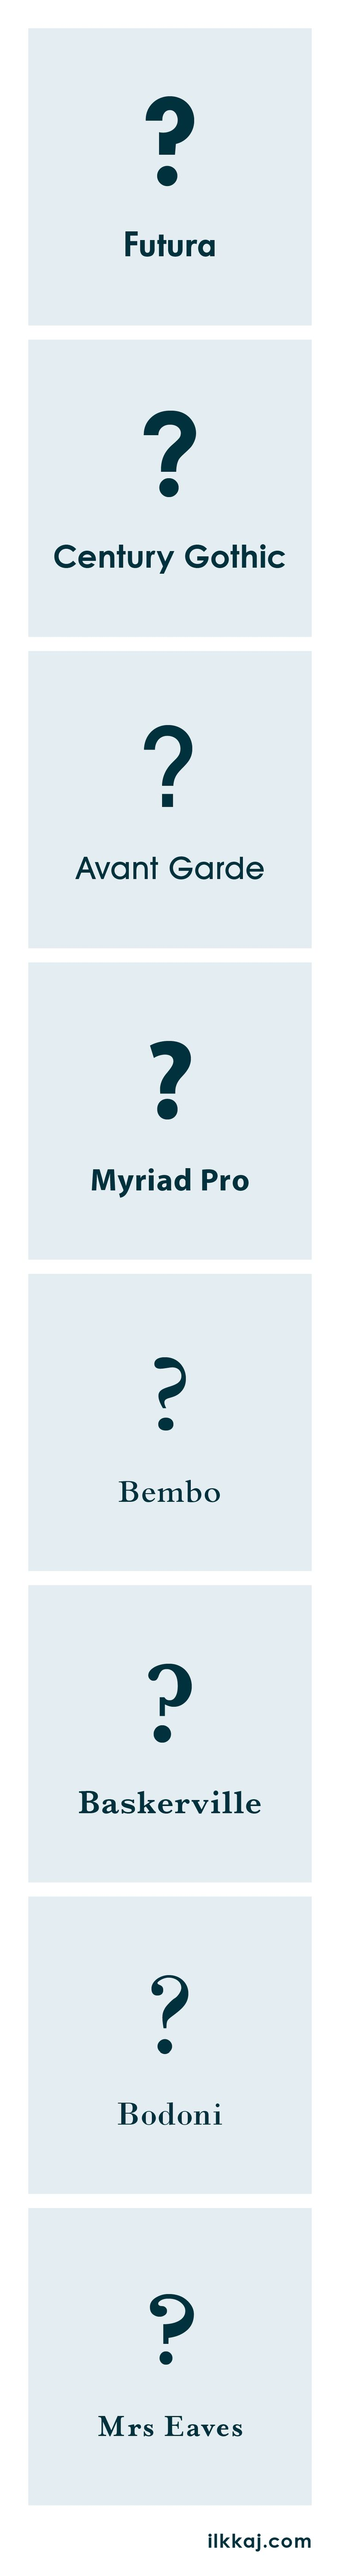 Comparing the question marks of some of my favorite typefaces.  #Typography #Typografia